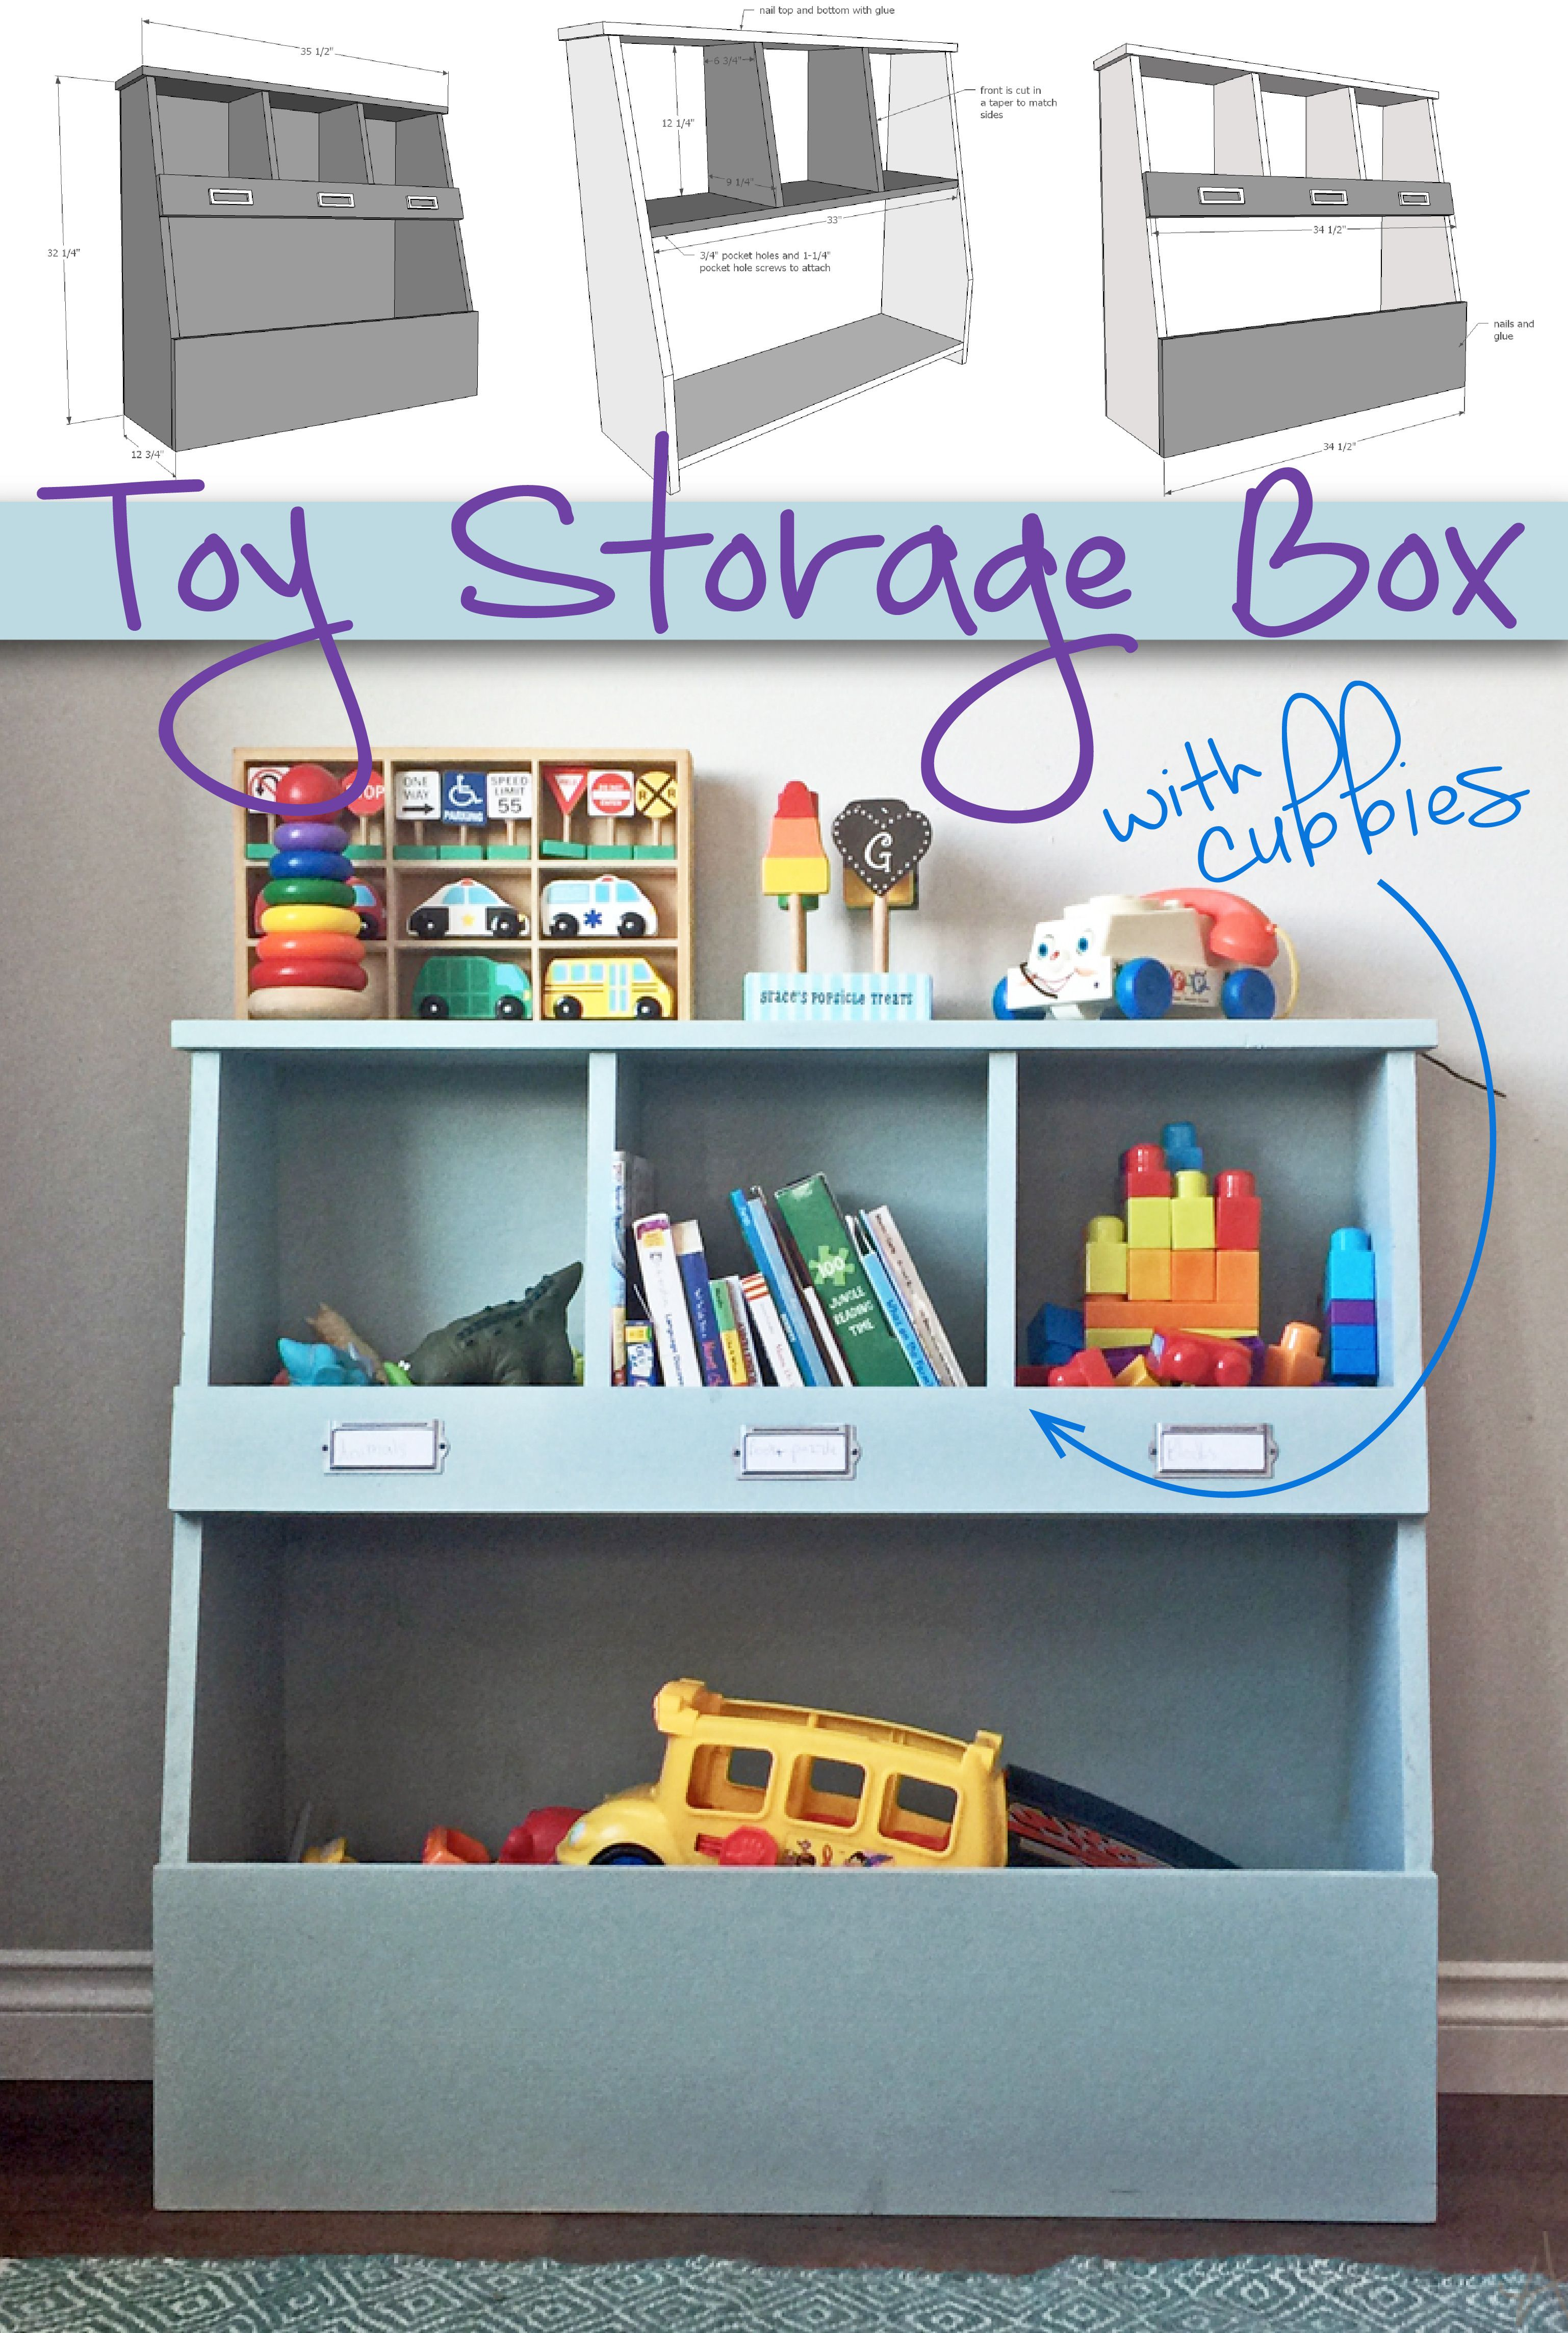 Gentil Toy Storage Box With Cubbies: Keep Your Home Organized And Your Kidsu0027 Toys  Out Of The Way With This Simple, Yet Stylish DIY Storage Bin Project  Tutorial.